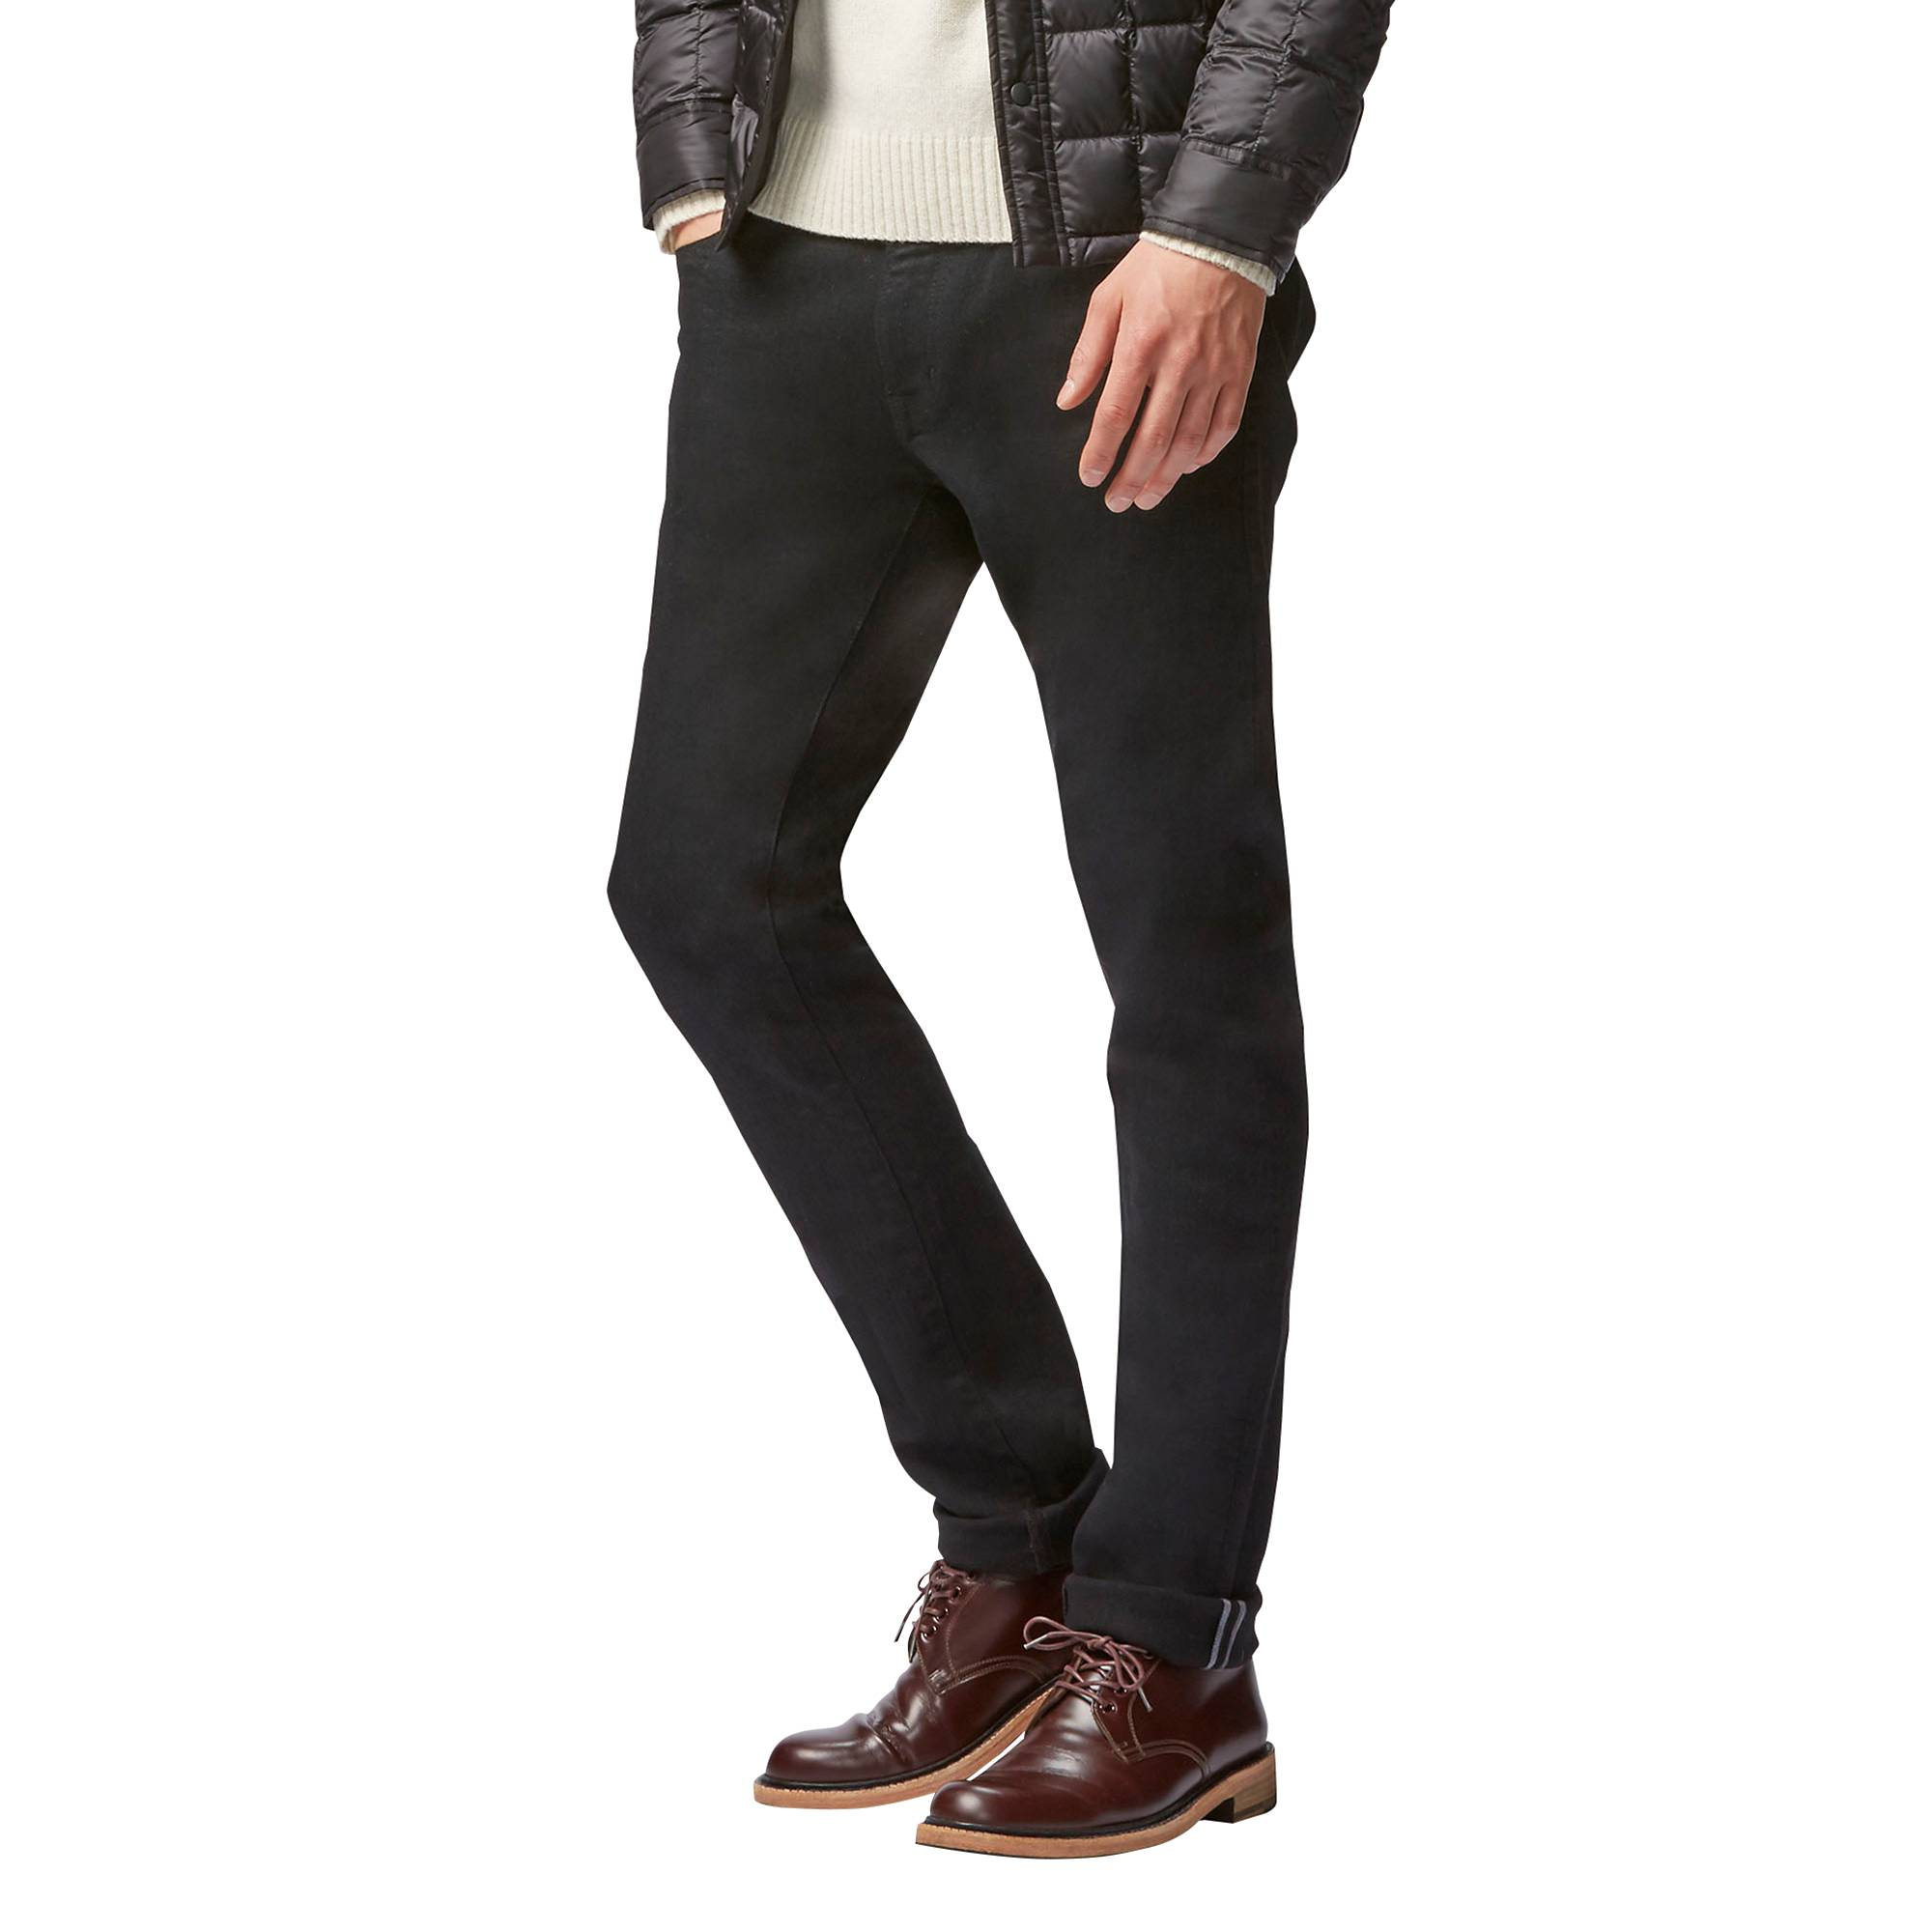 Find great deals on eBay for black stretch skinny jeans. Shop with confidence.